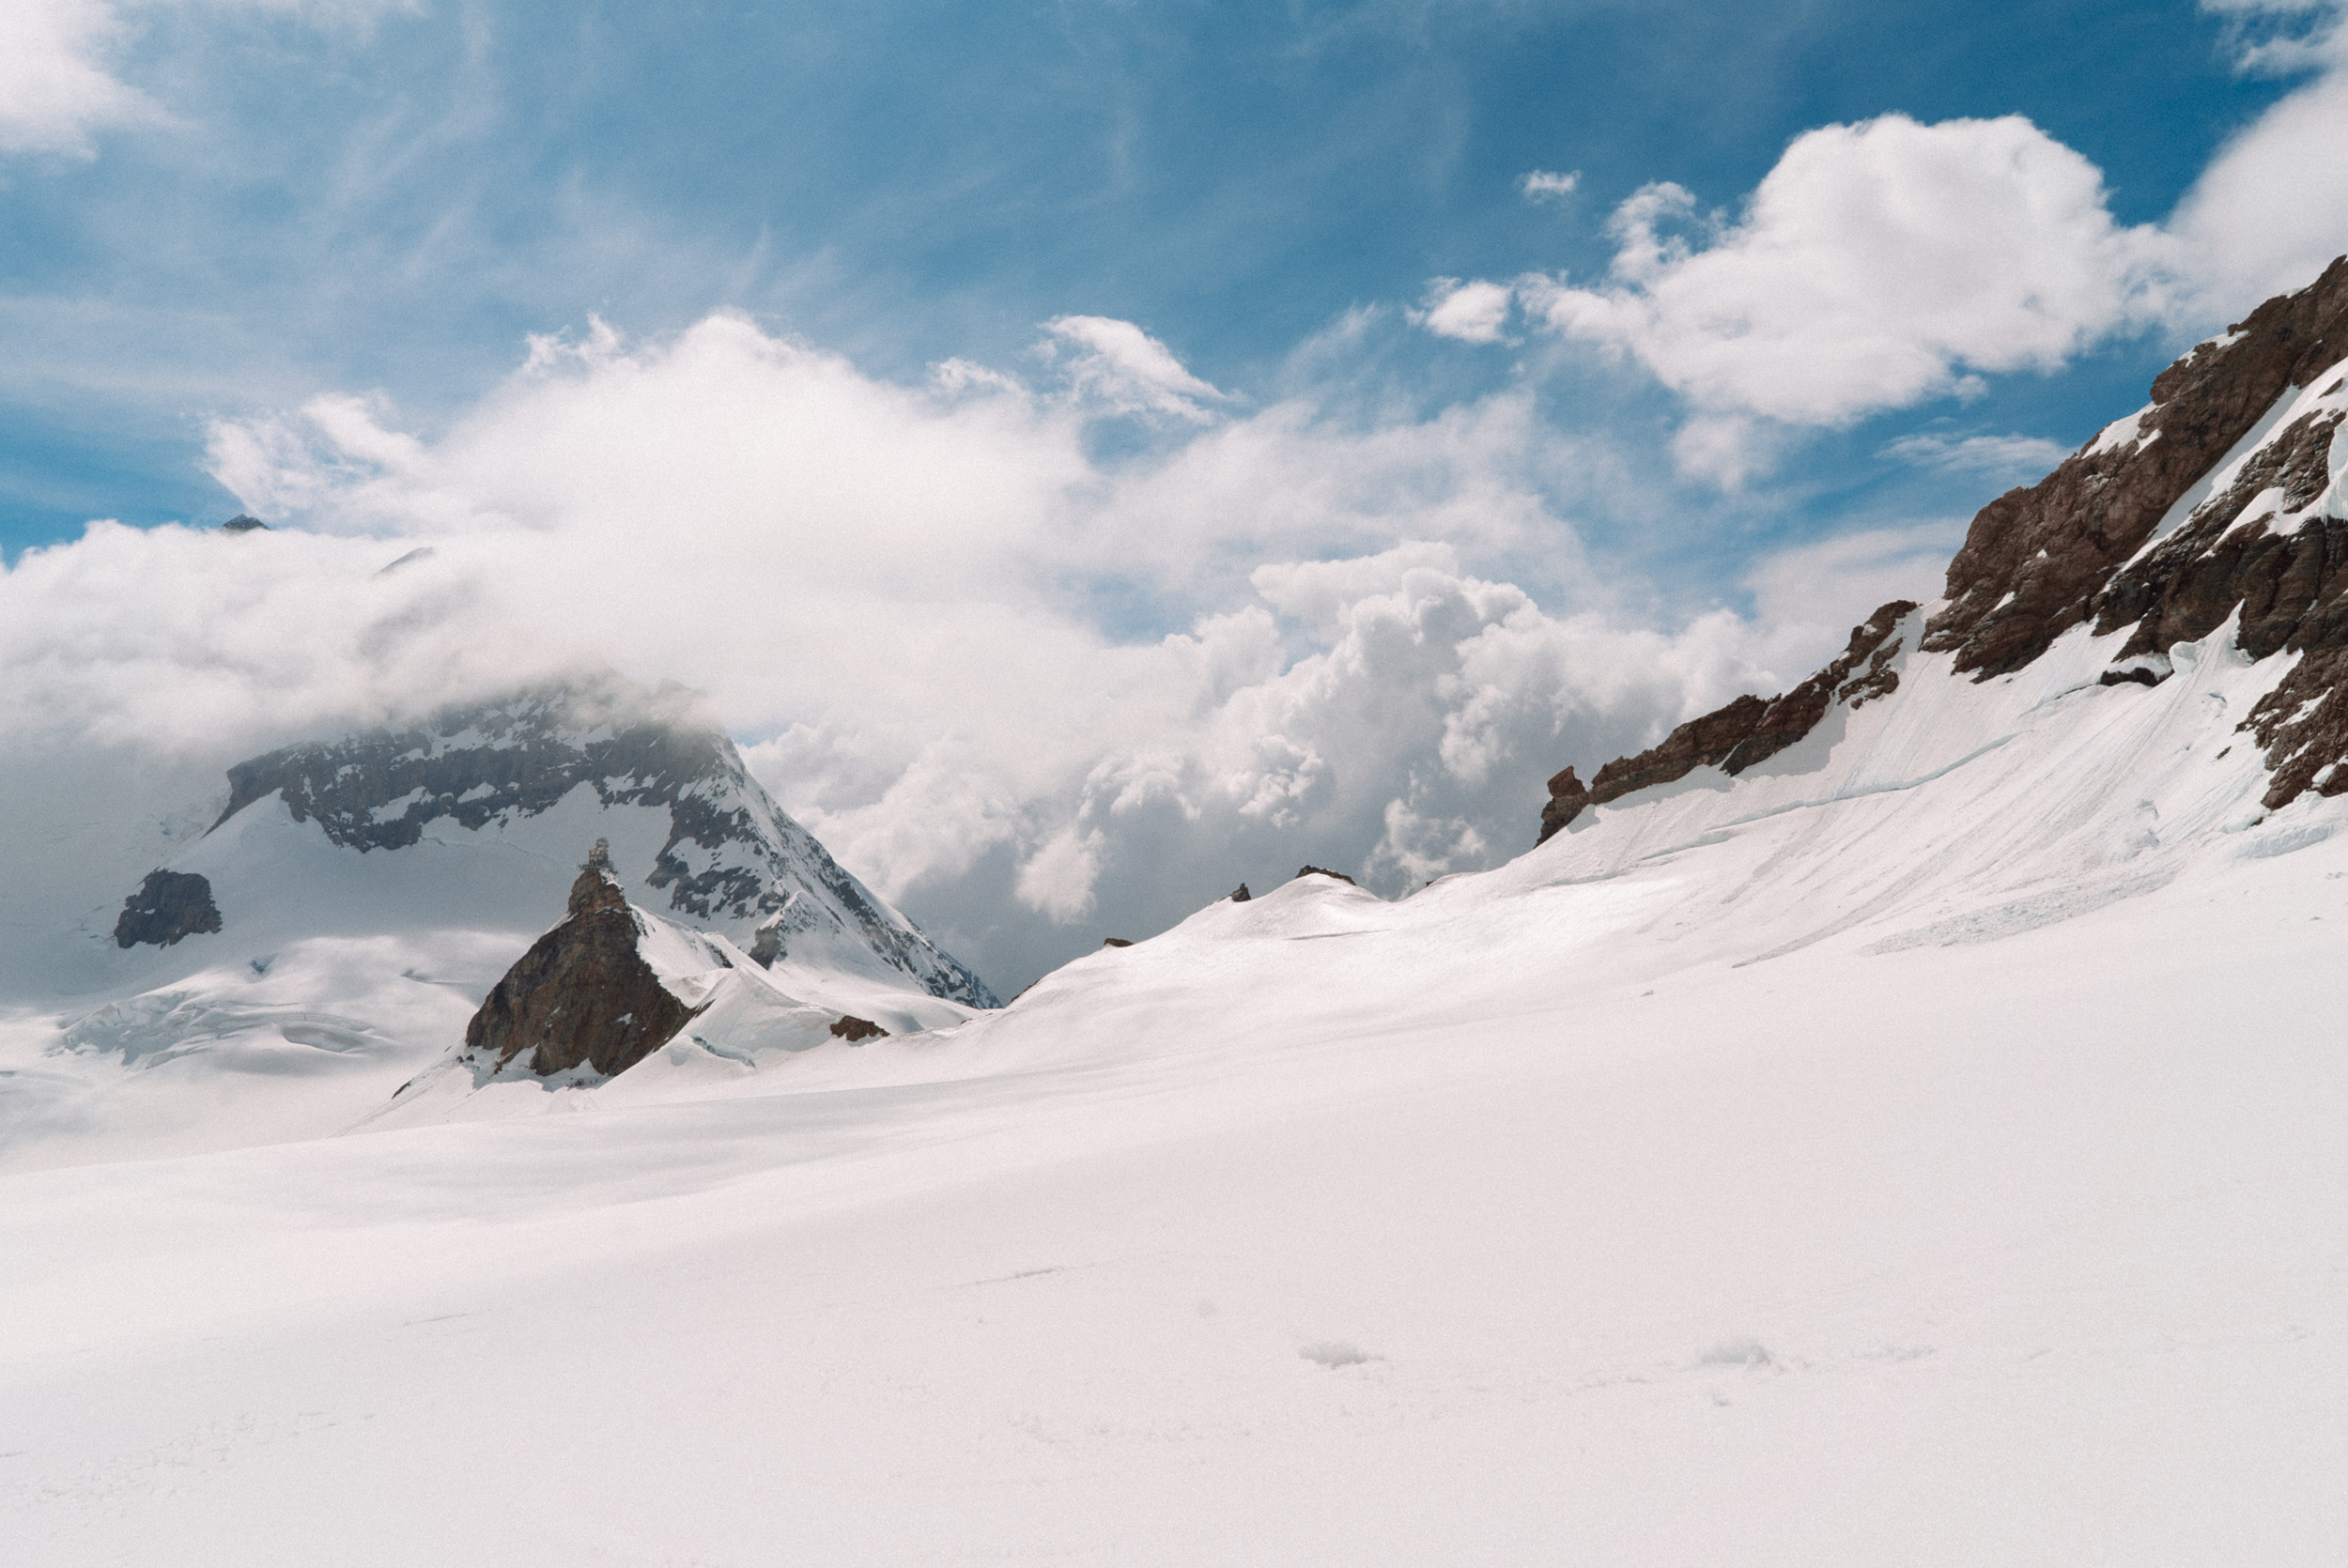 The view of the Sphinx Observatory and a cloudy Jungfrau peak on my walk back from Mönchsjoch Hut.